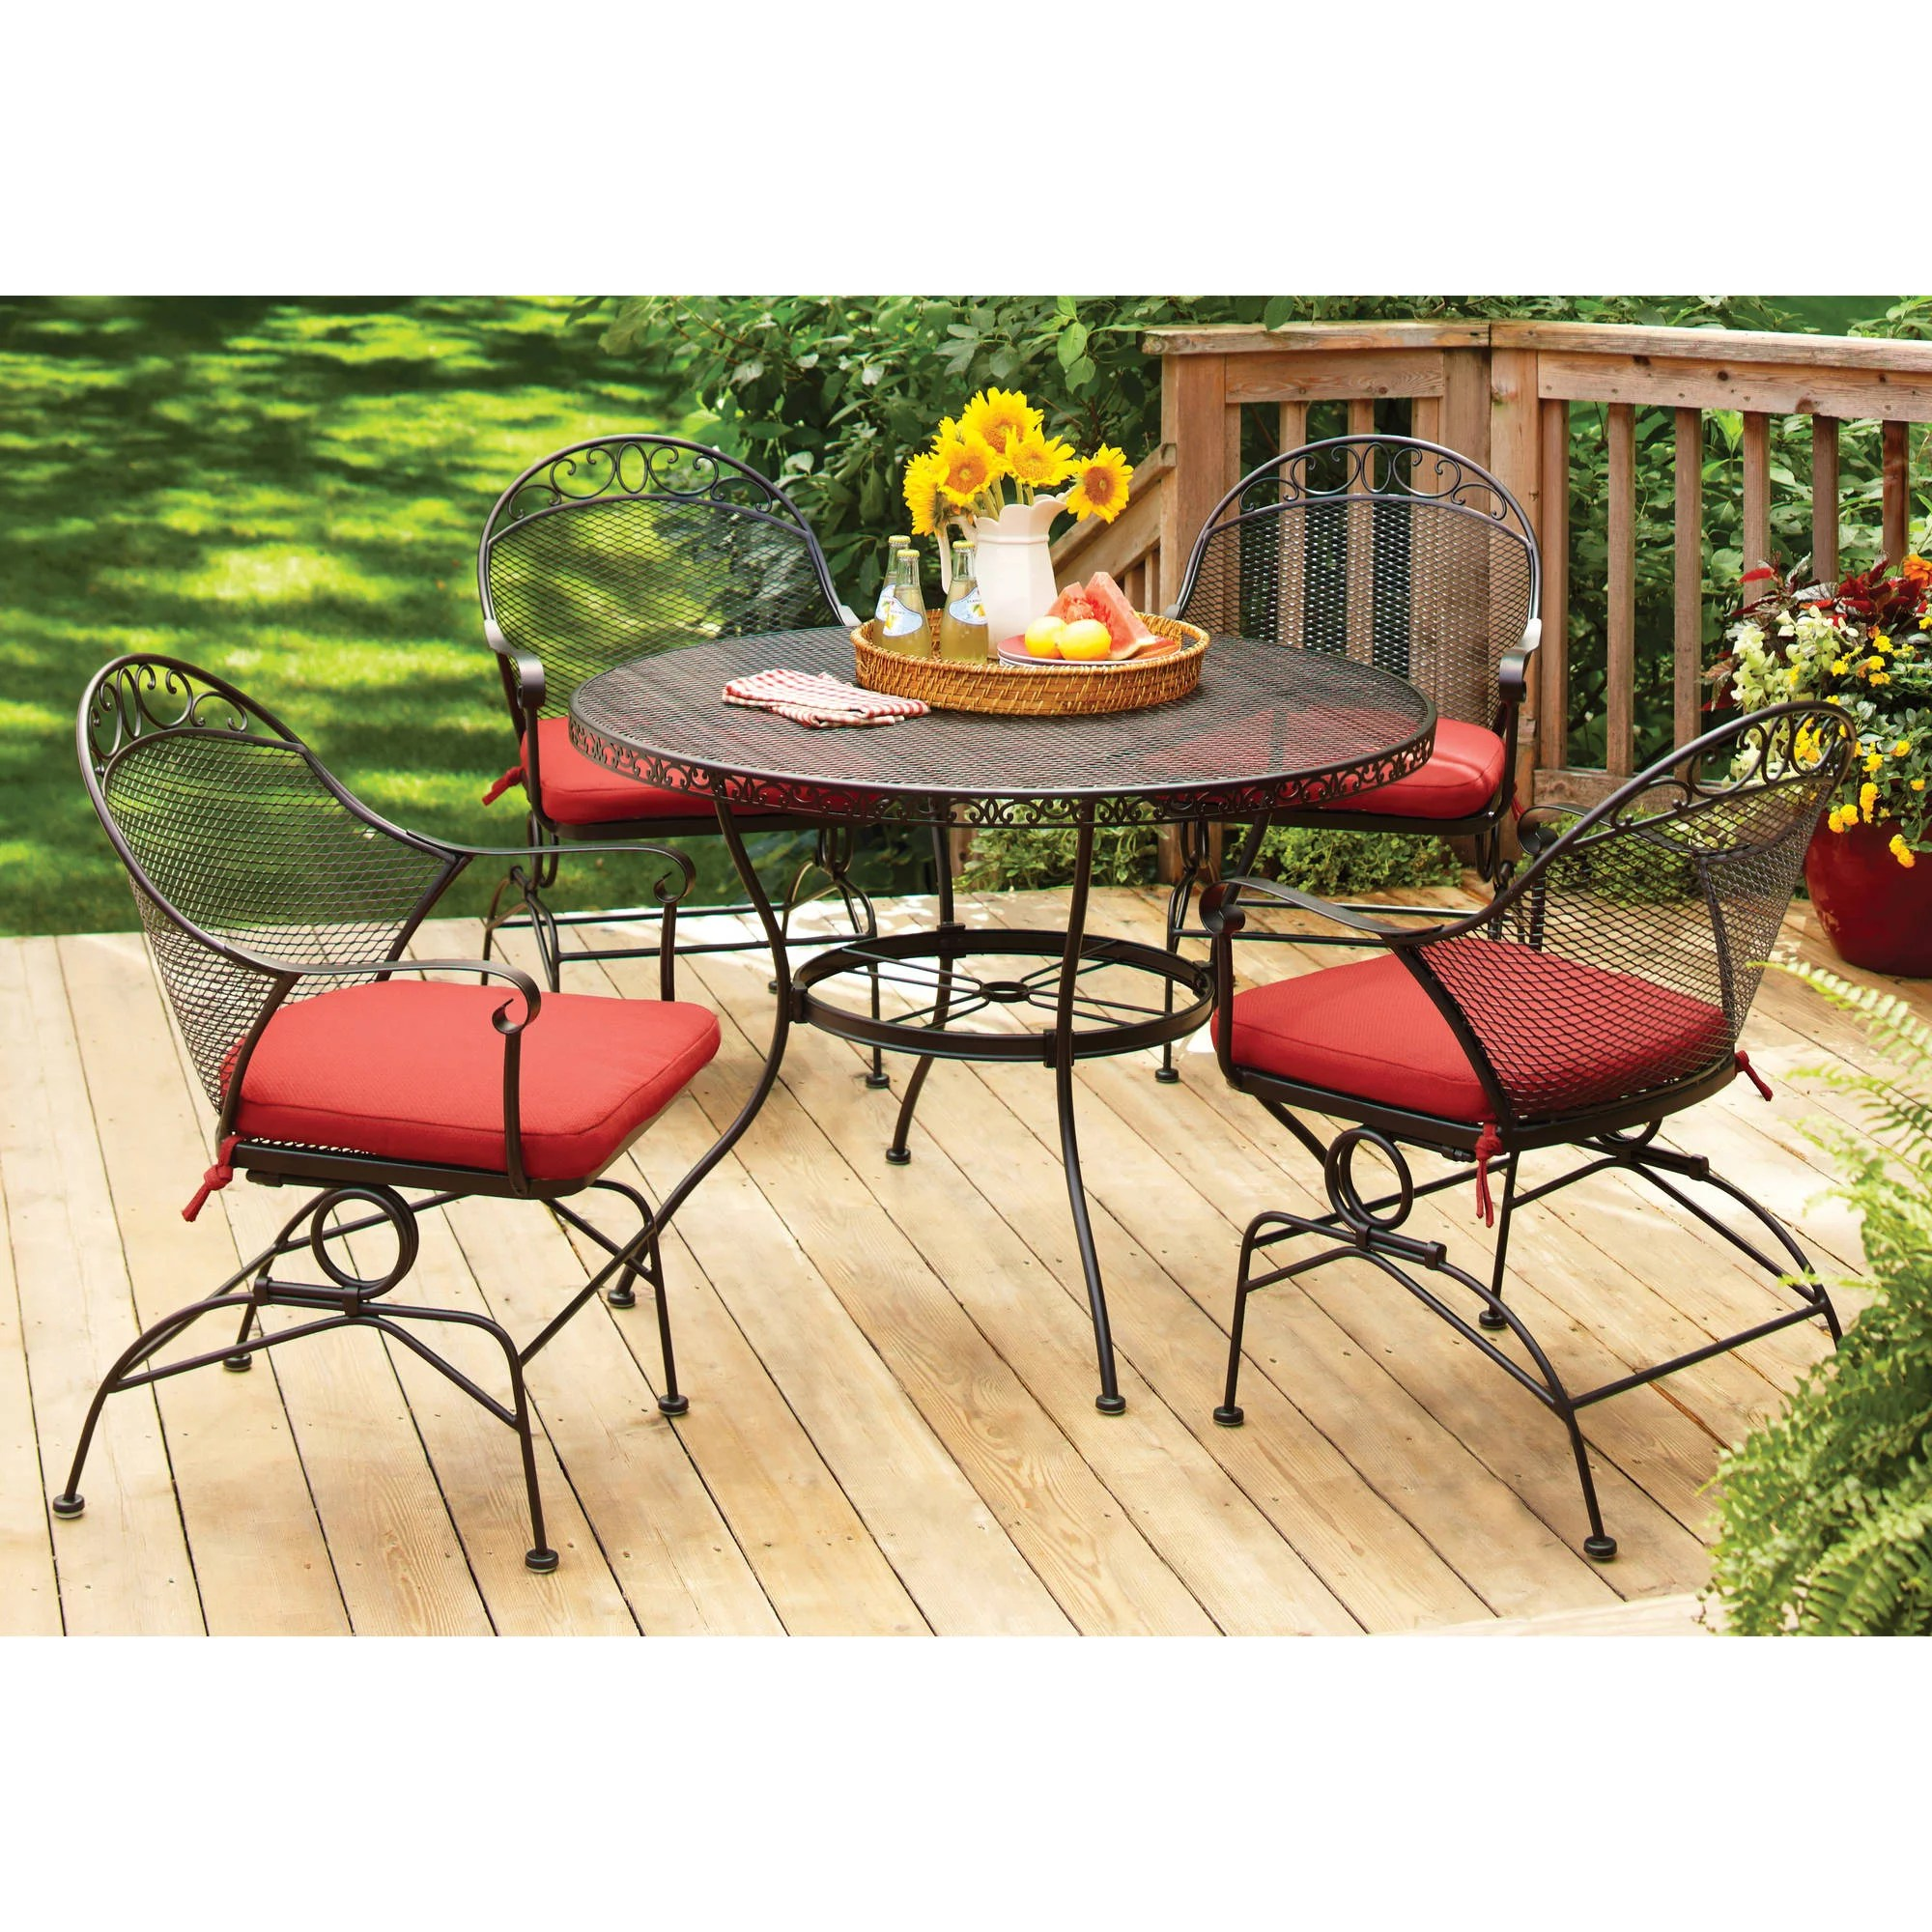 better homes and gardens wrought iron patio dining set clayton court cushioned 5 piece red